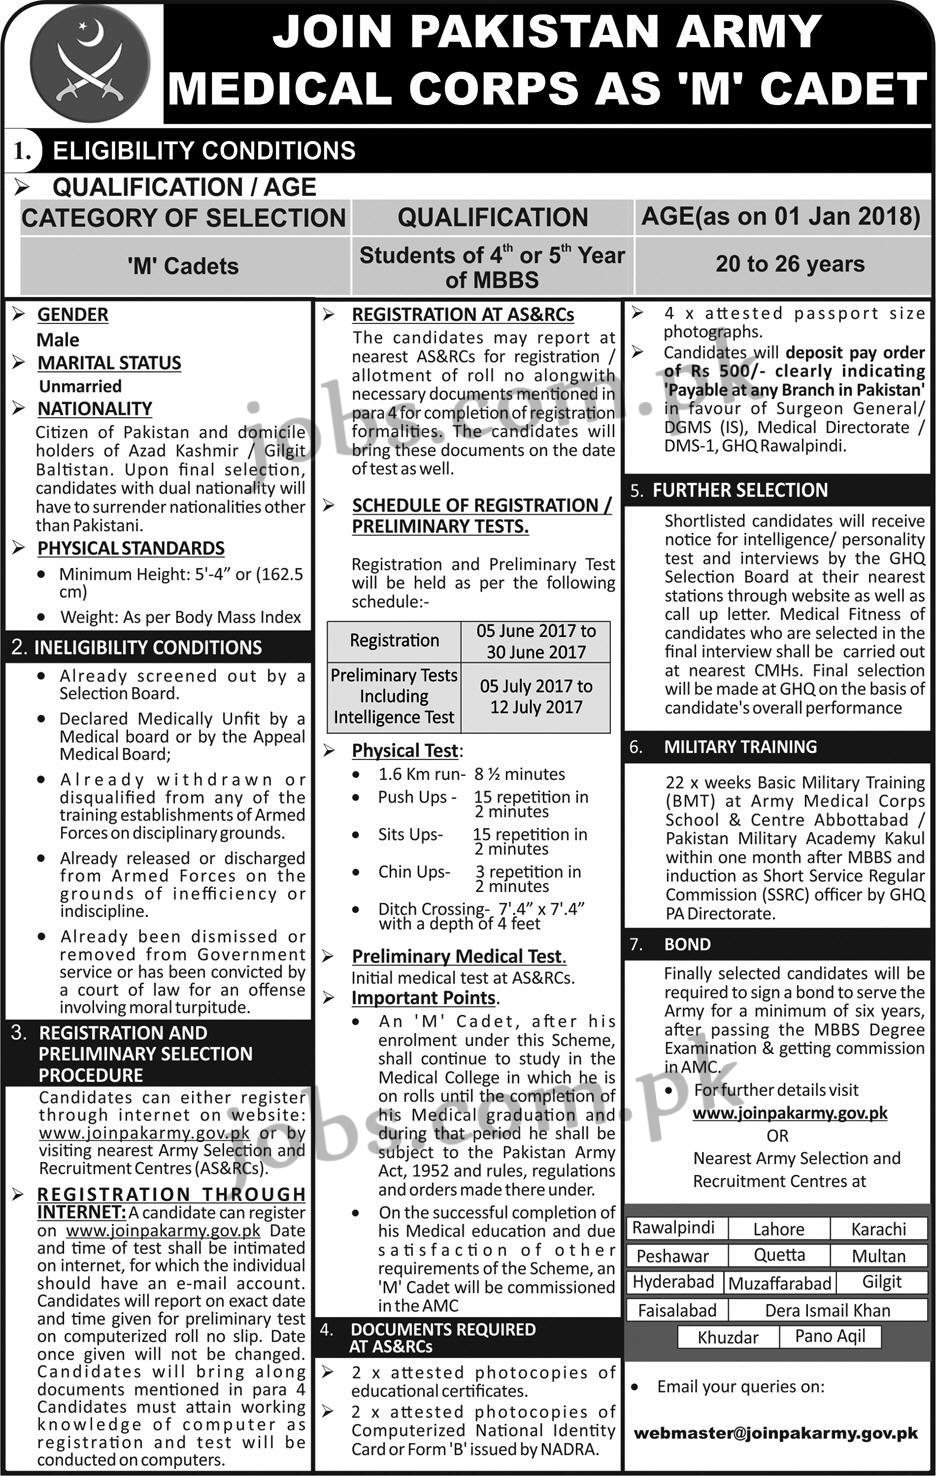 how to join pak army after graduation for females 2017